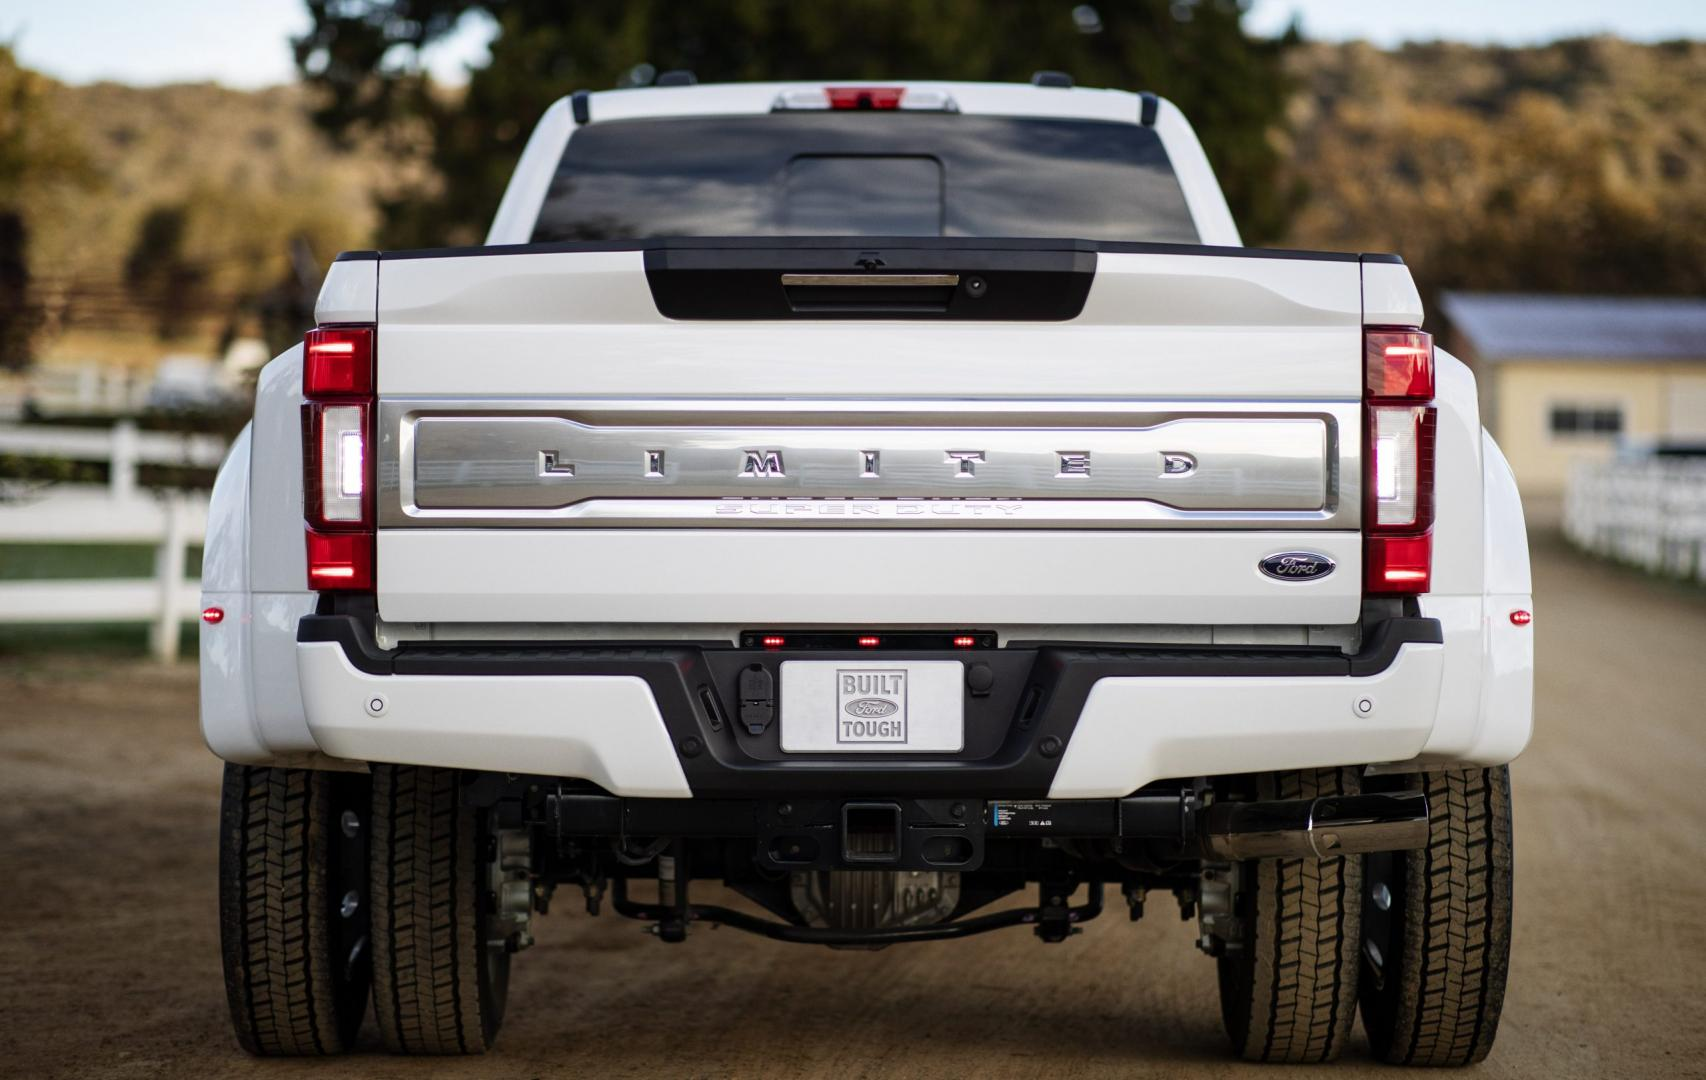 Ford F-series Super Duty knoppen